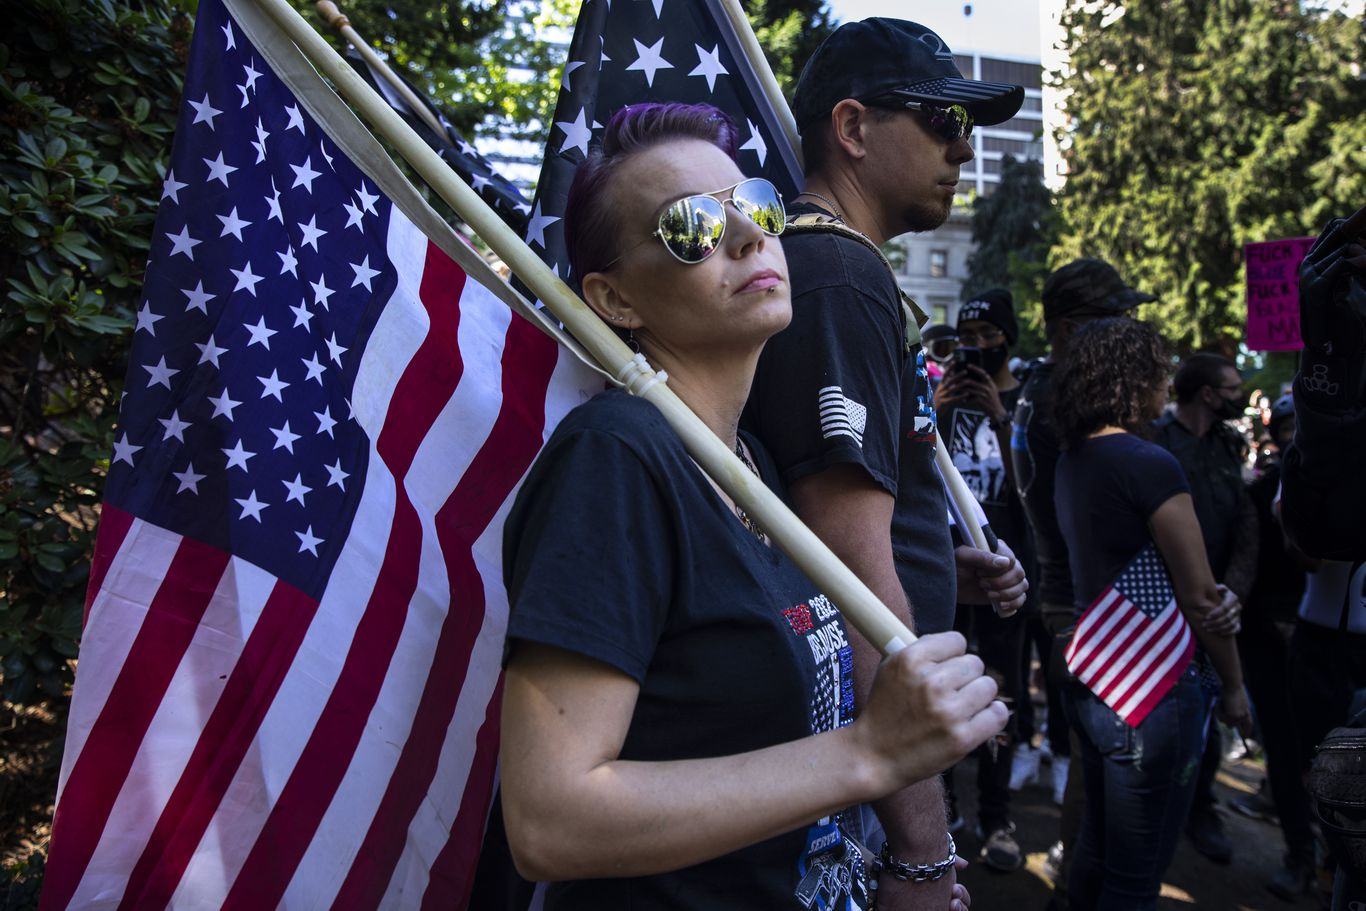 Violence in Portland after far-right groups rally thumbnail